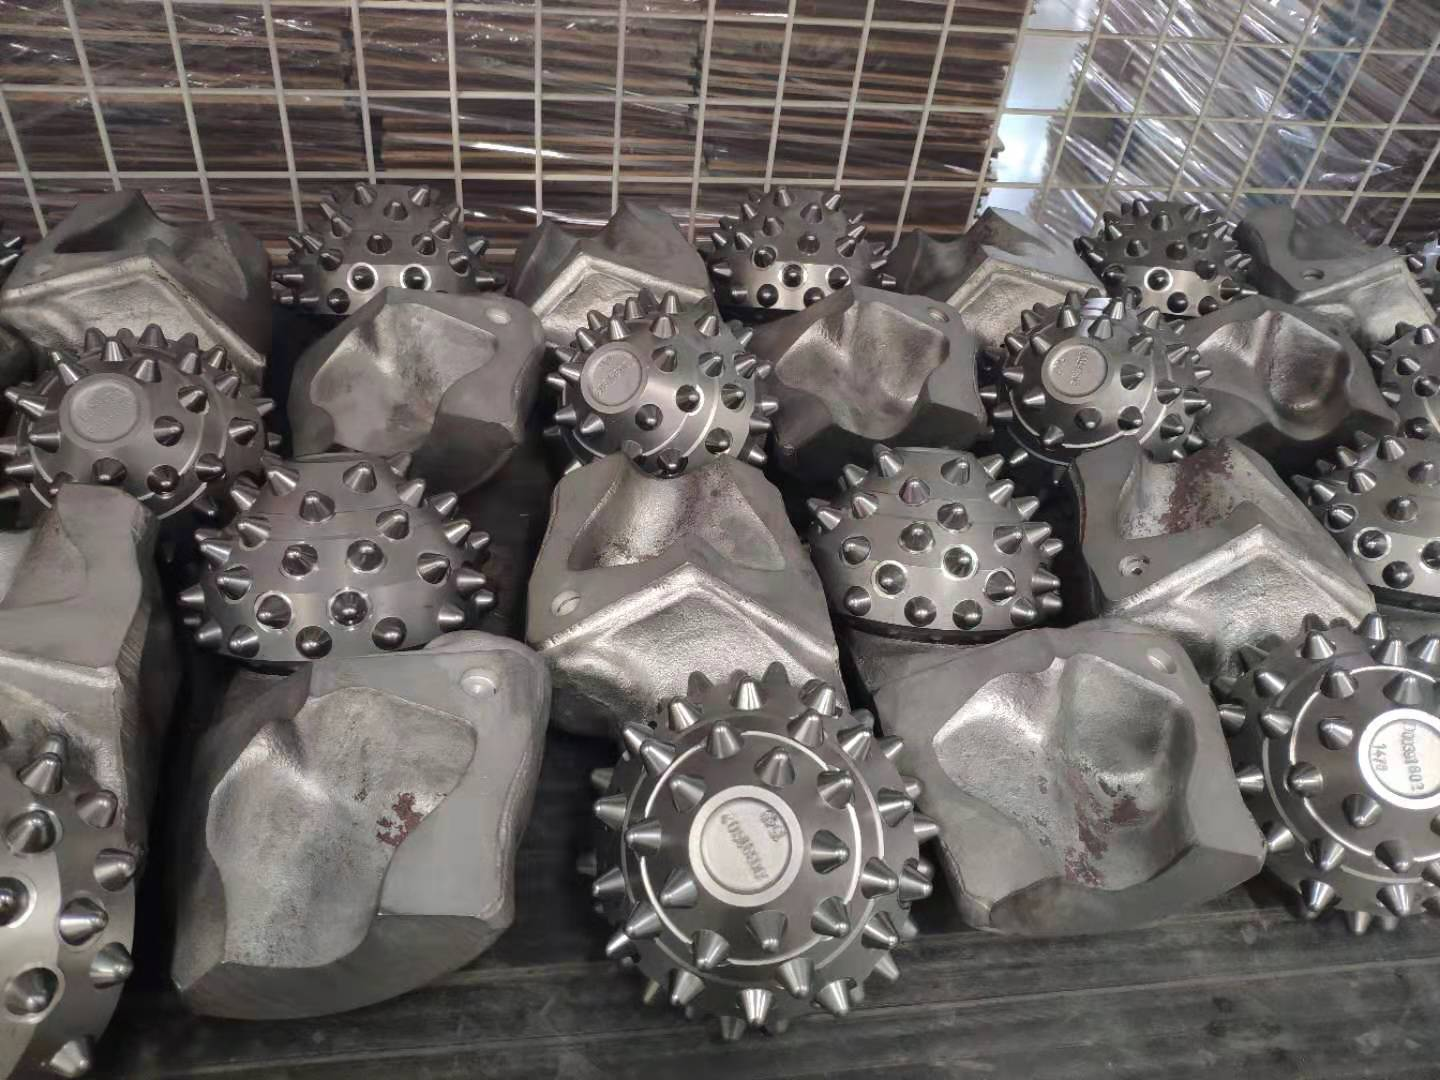 High-quality drill bits are in production